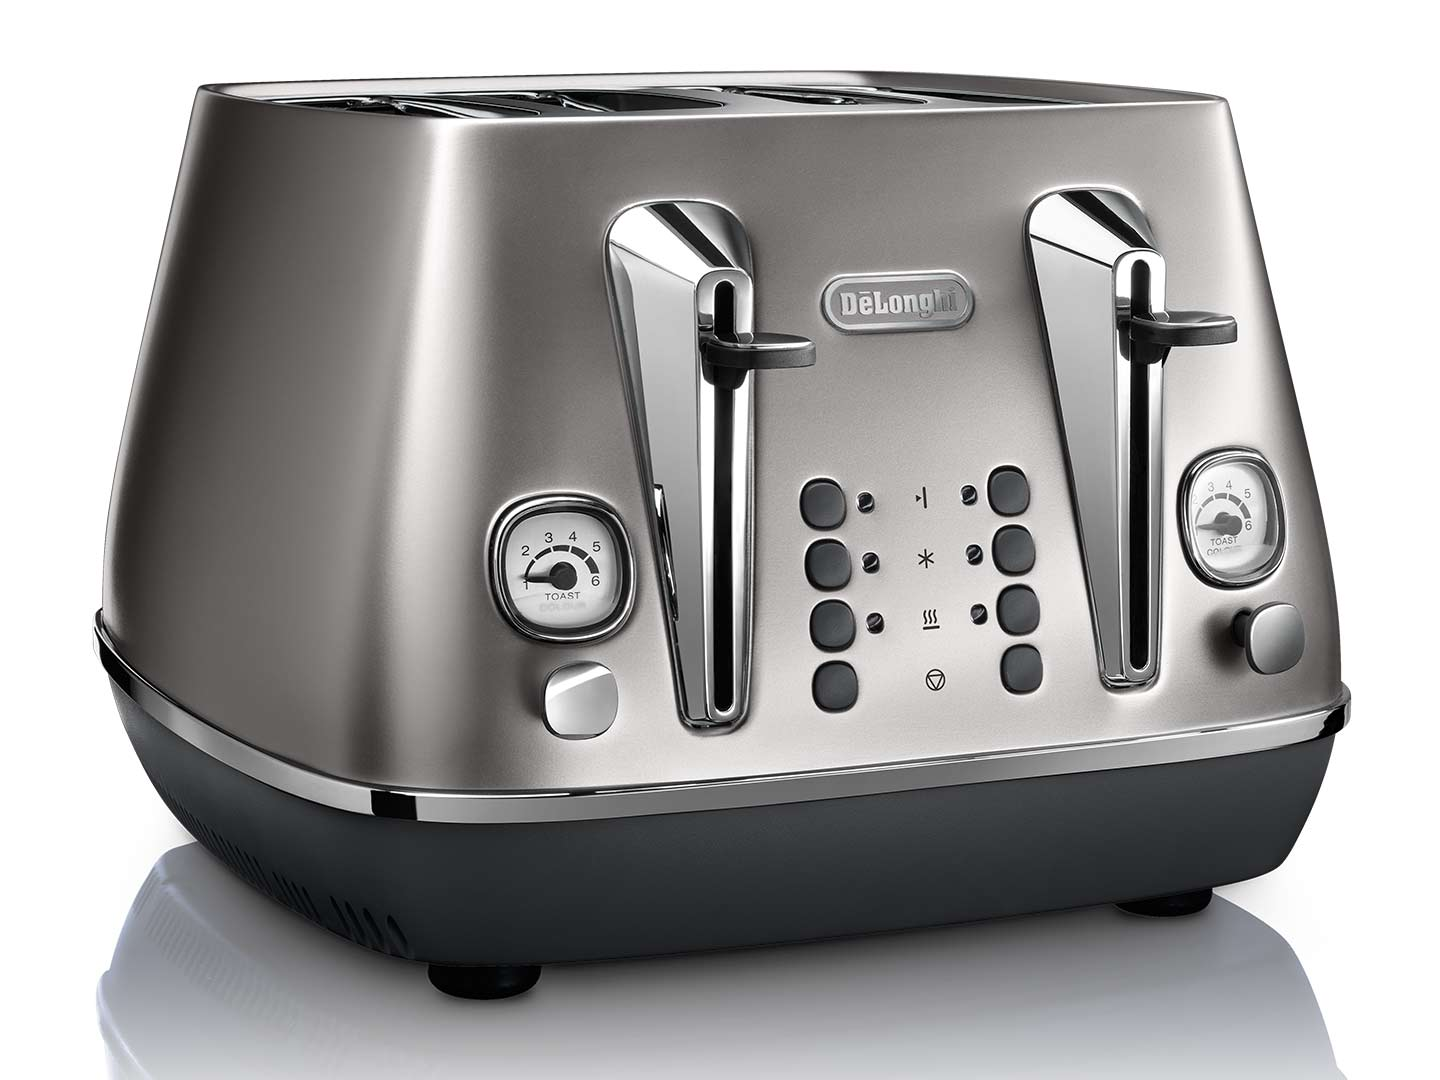 Clearance Stock: Distinta Flair 4 Slice Toaster - Finesse Silver  - CTI4003.S